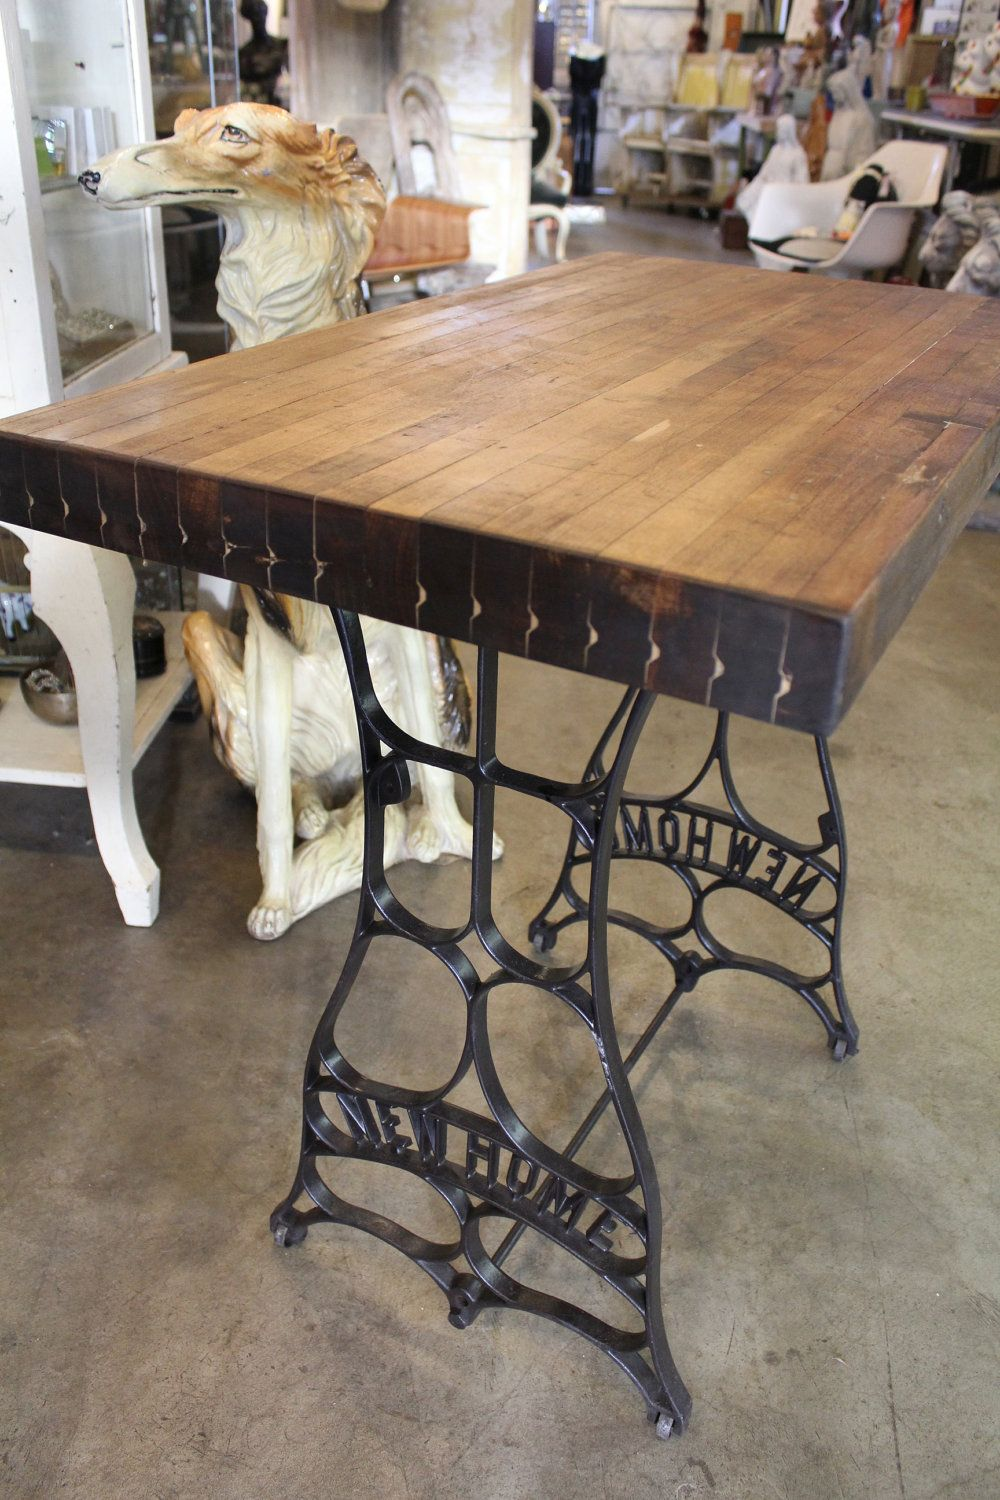 17 best images about tables on pinterest live edge table legs and entry tables. beautiful ideas. Home Design Ideas